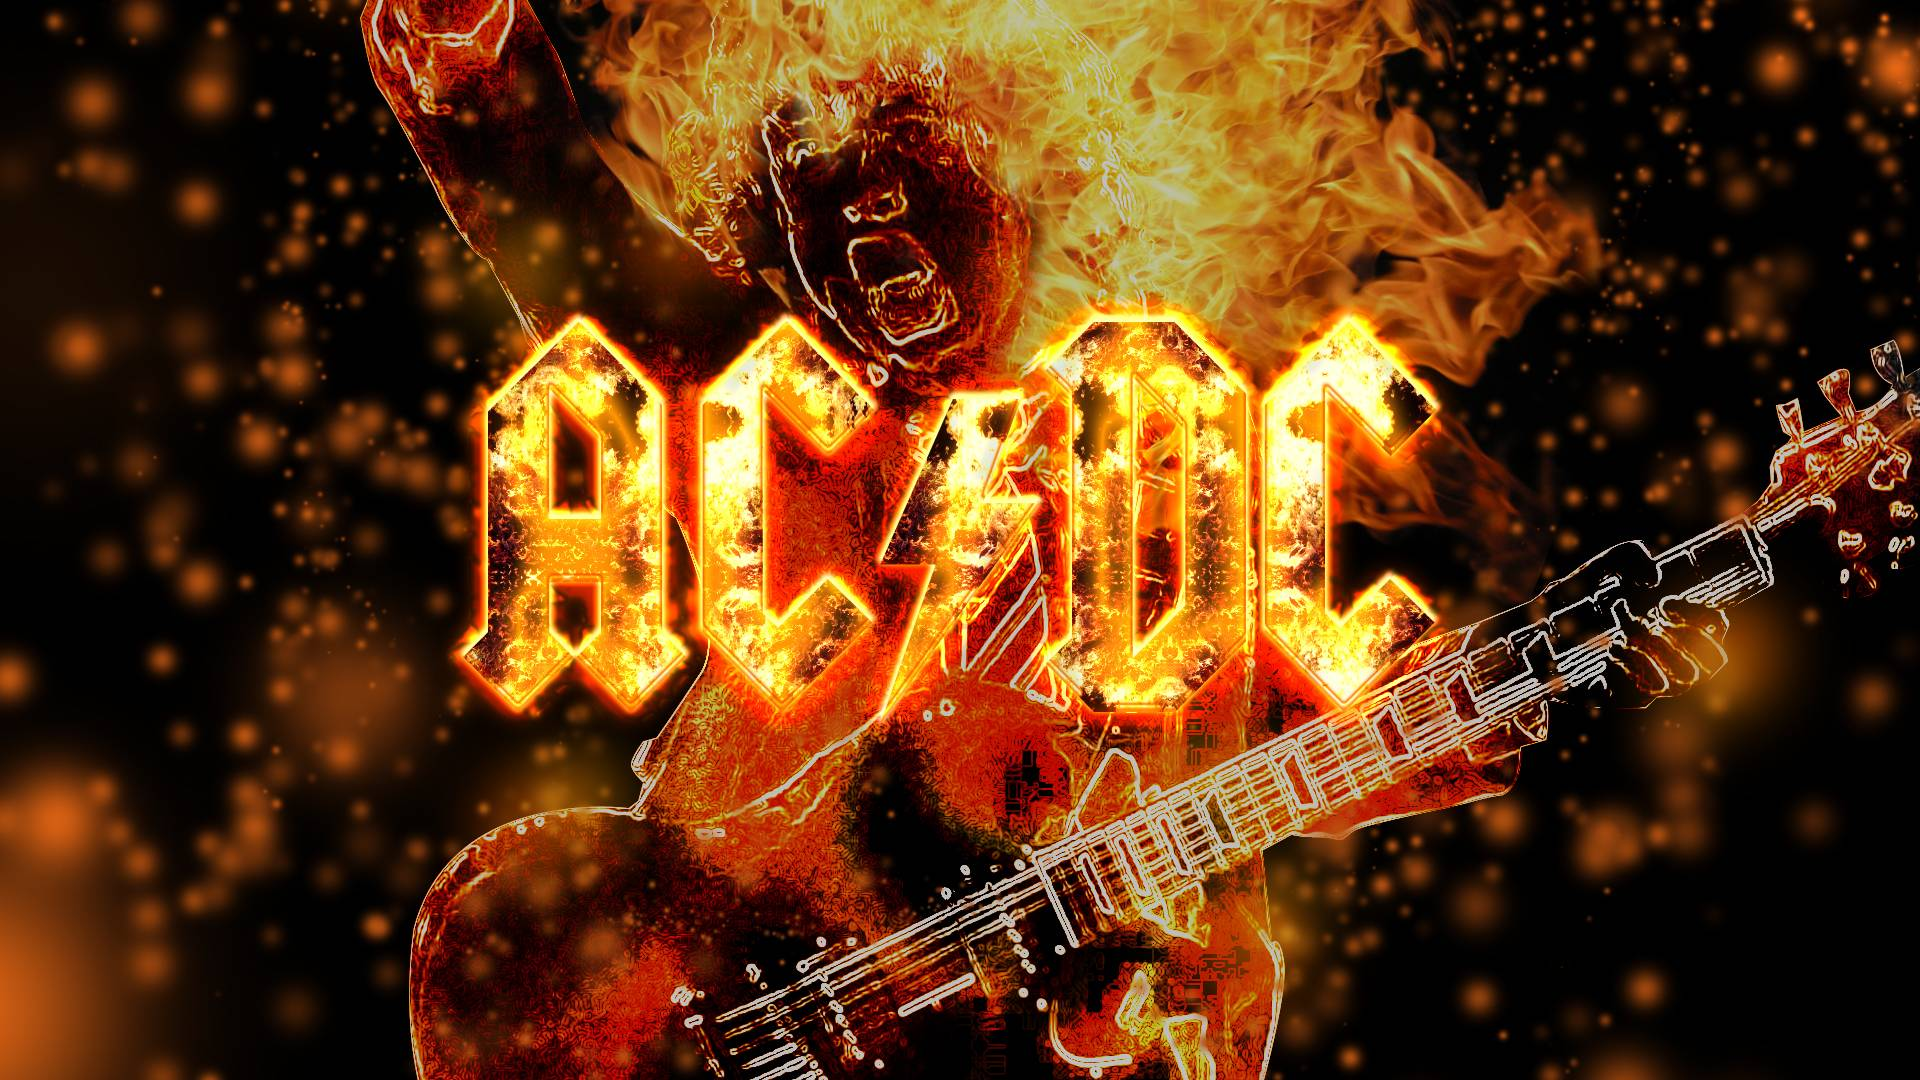 AC/DC backgrounds